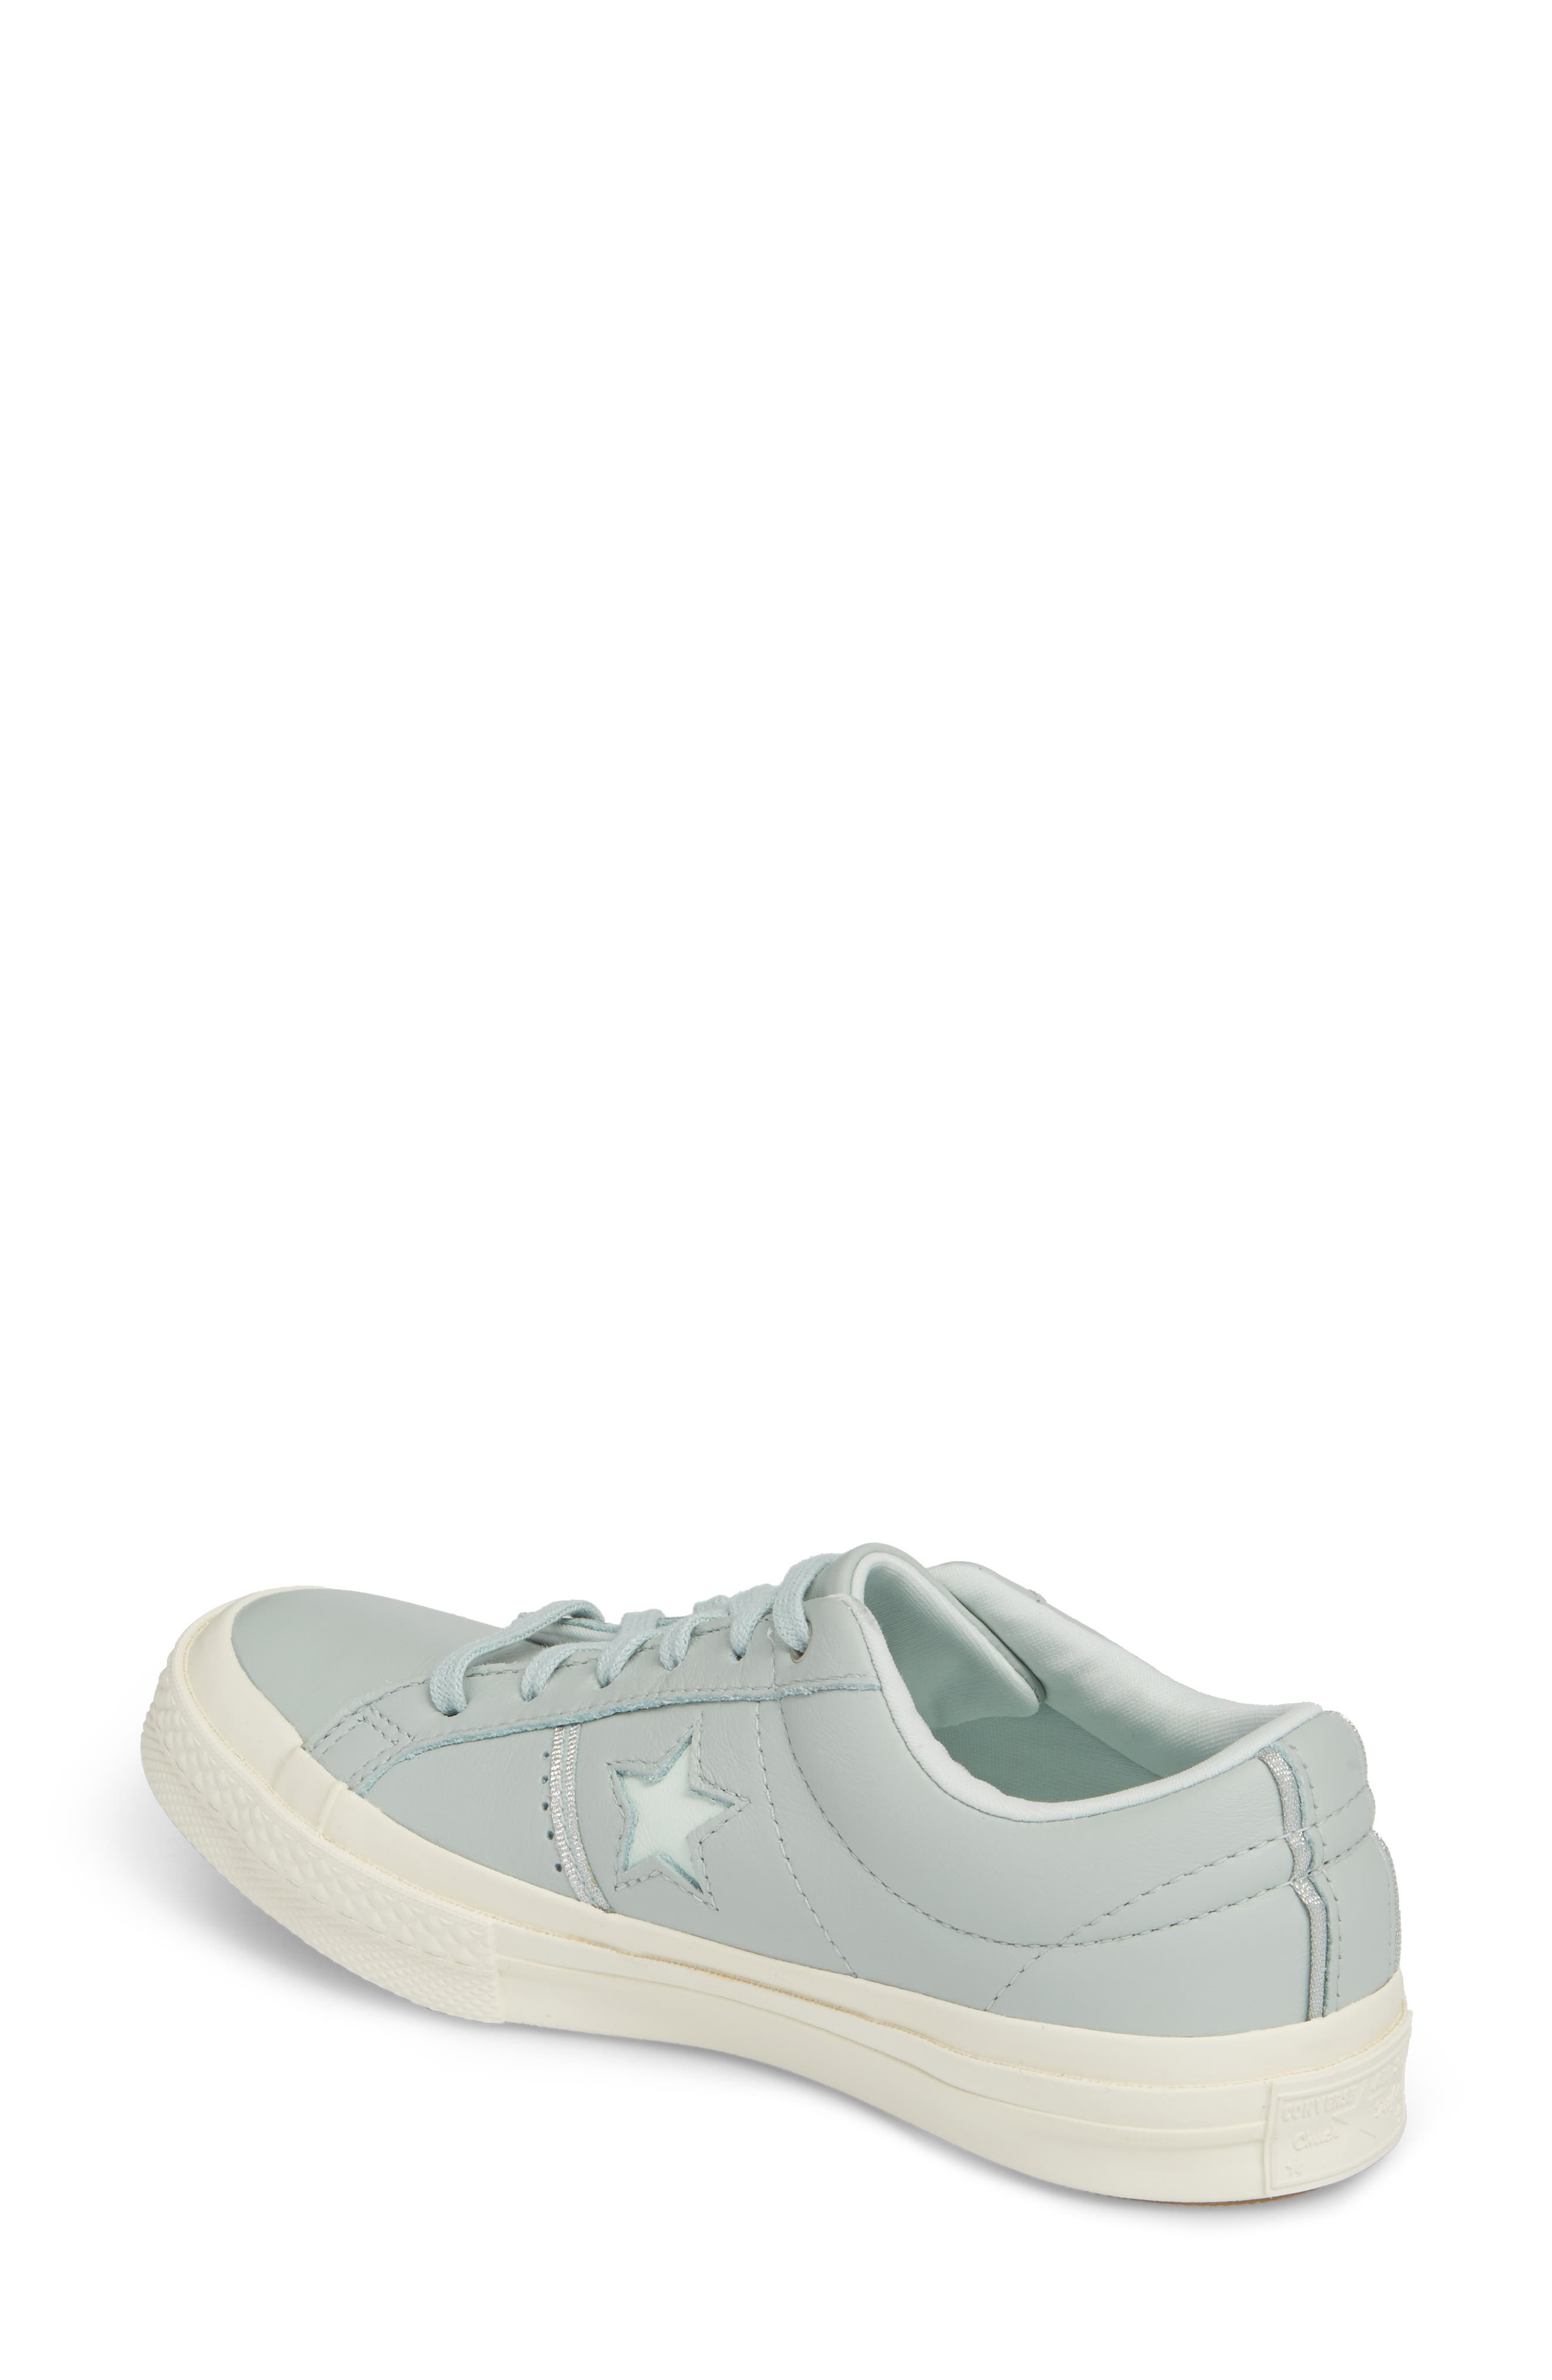 One Star Piping Sneaker,                             Alternate thumbnail 2, color,                             Dried Bamboo